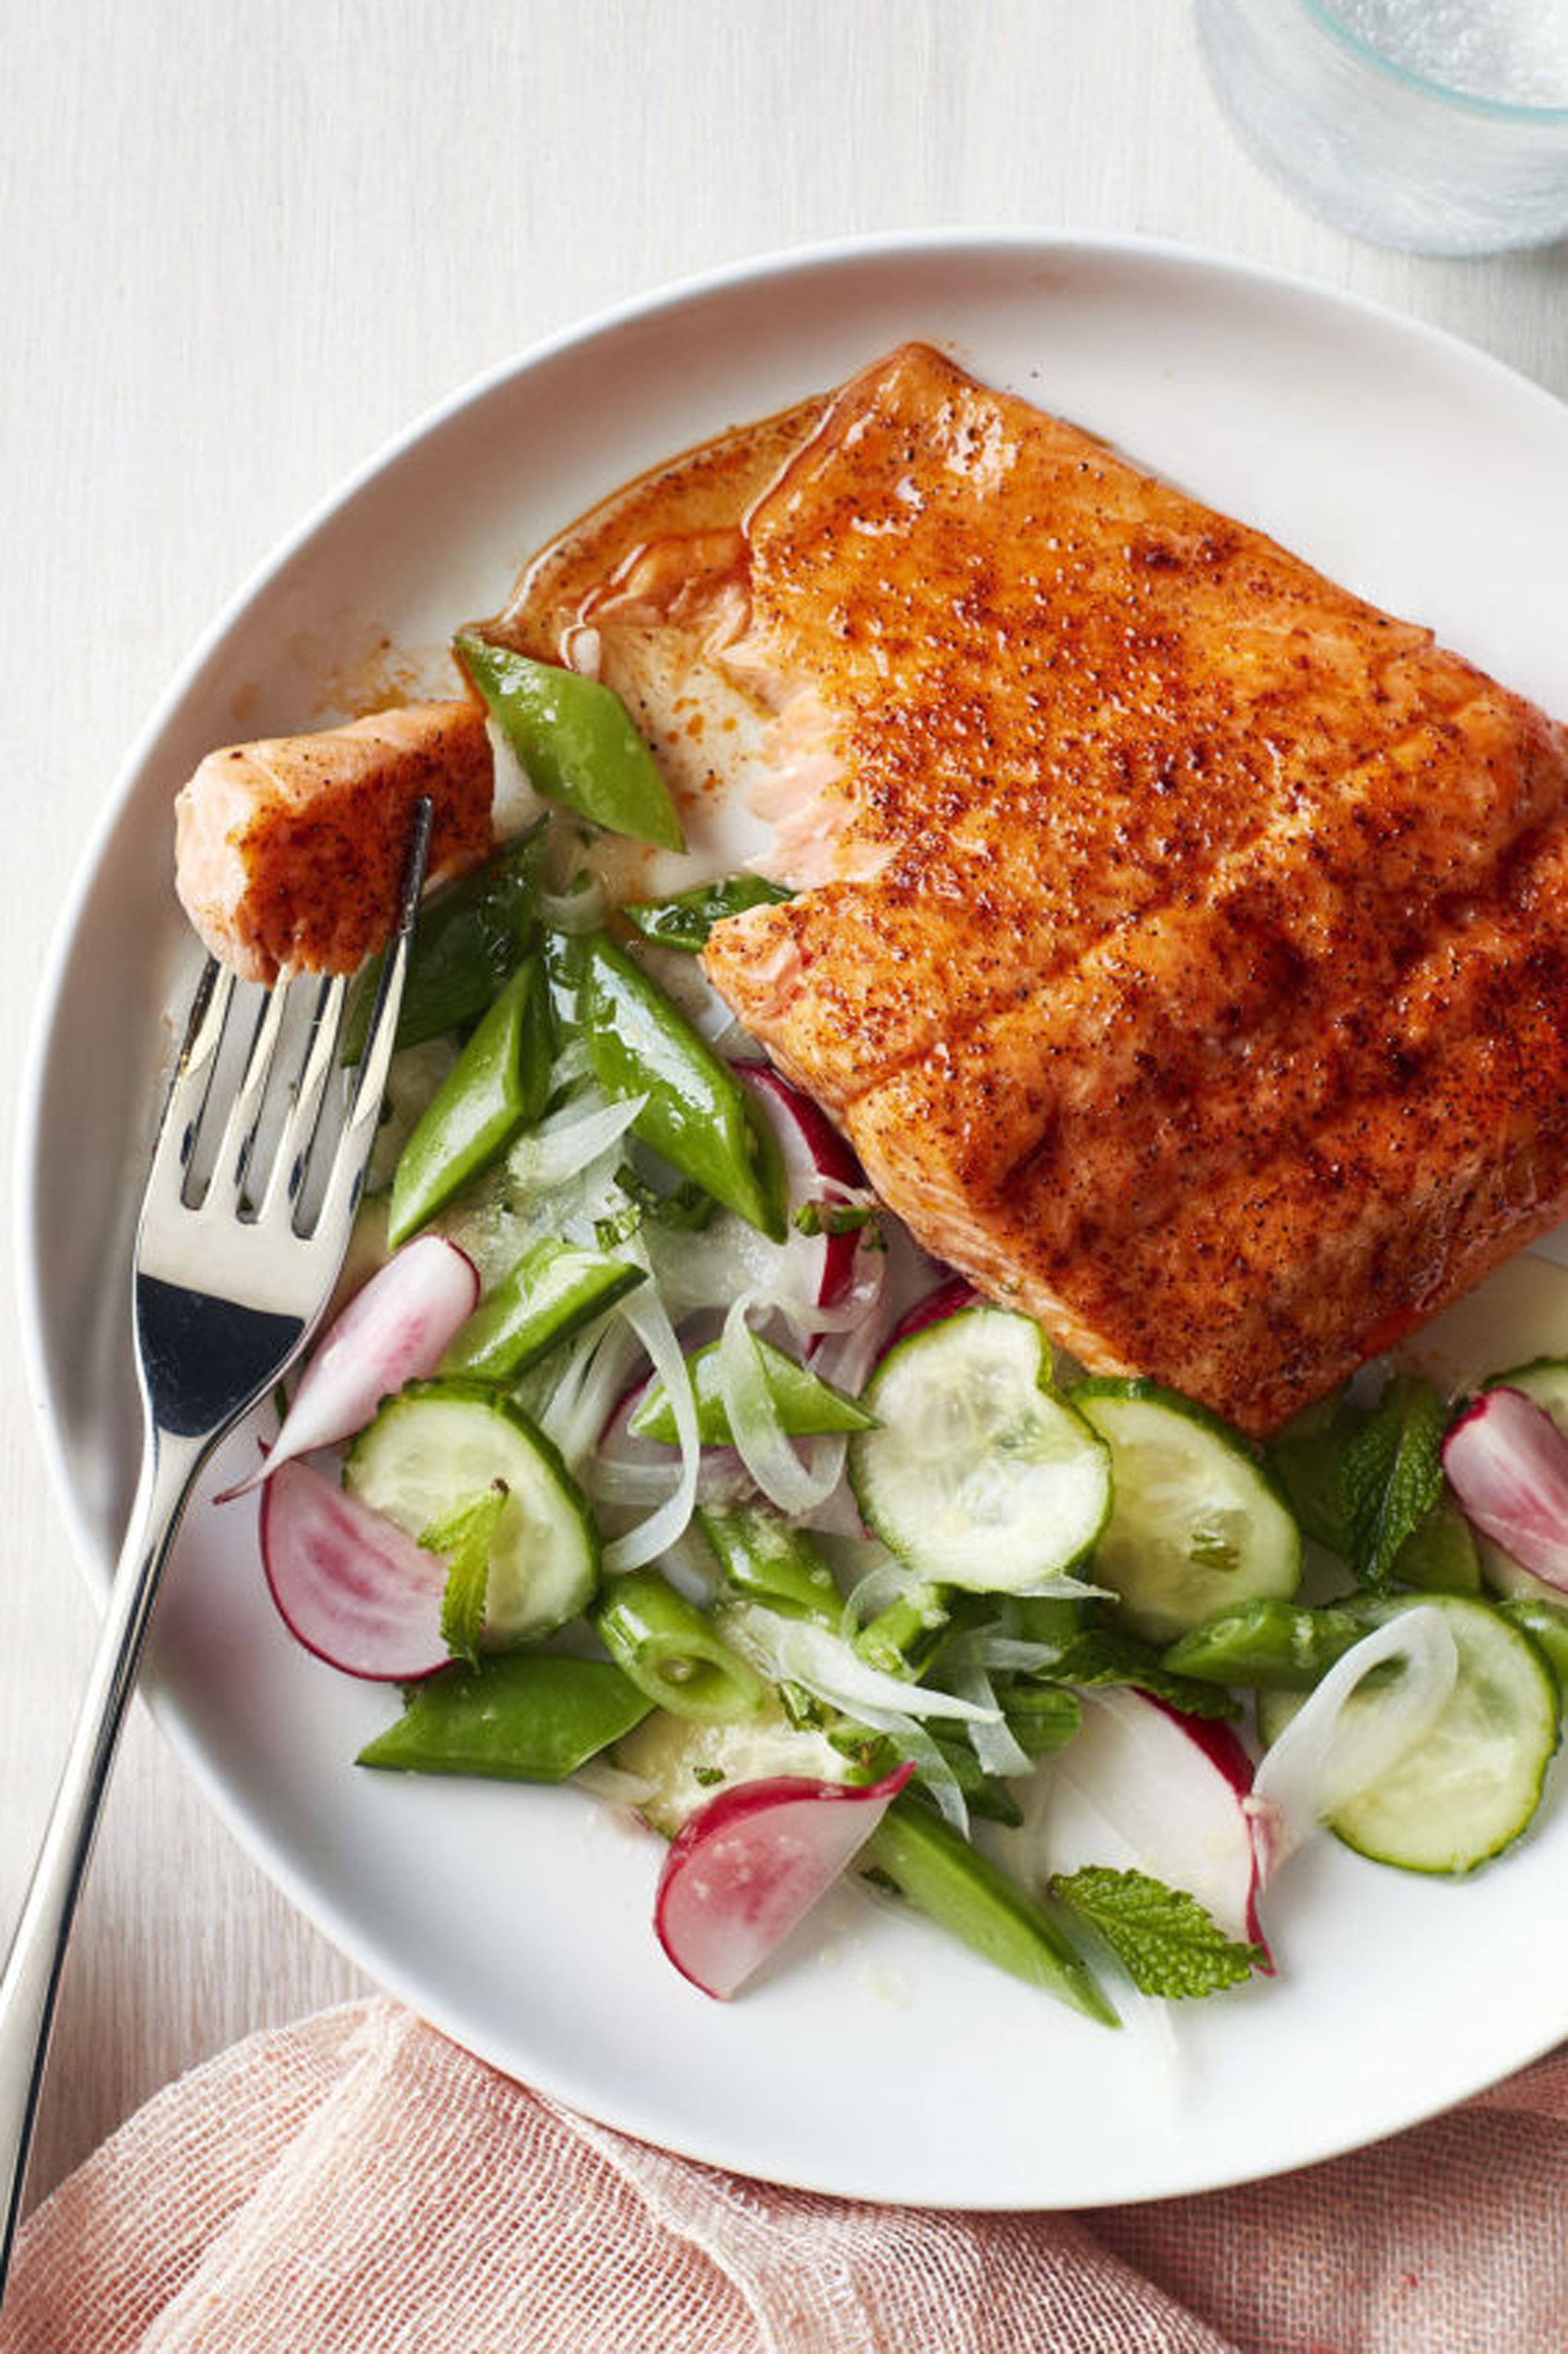 57 easy salmon recipes from baked to grilled how to cook salmon ccuart Image collections